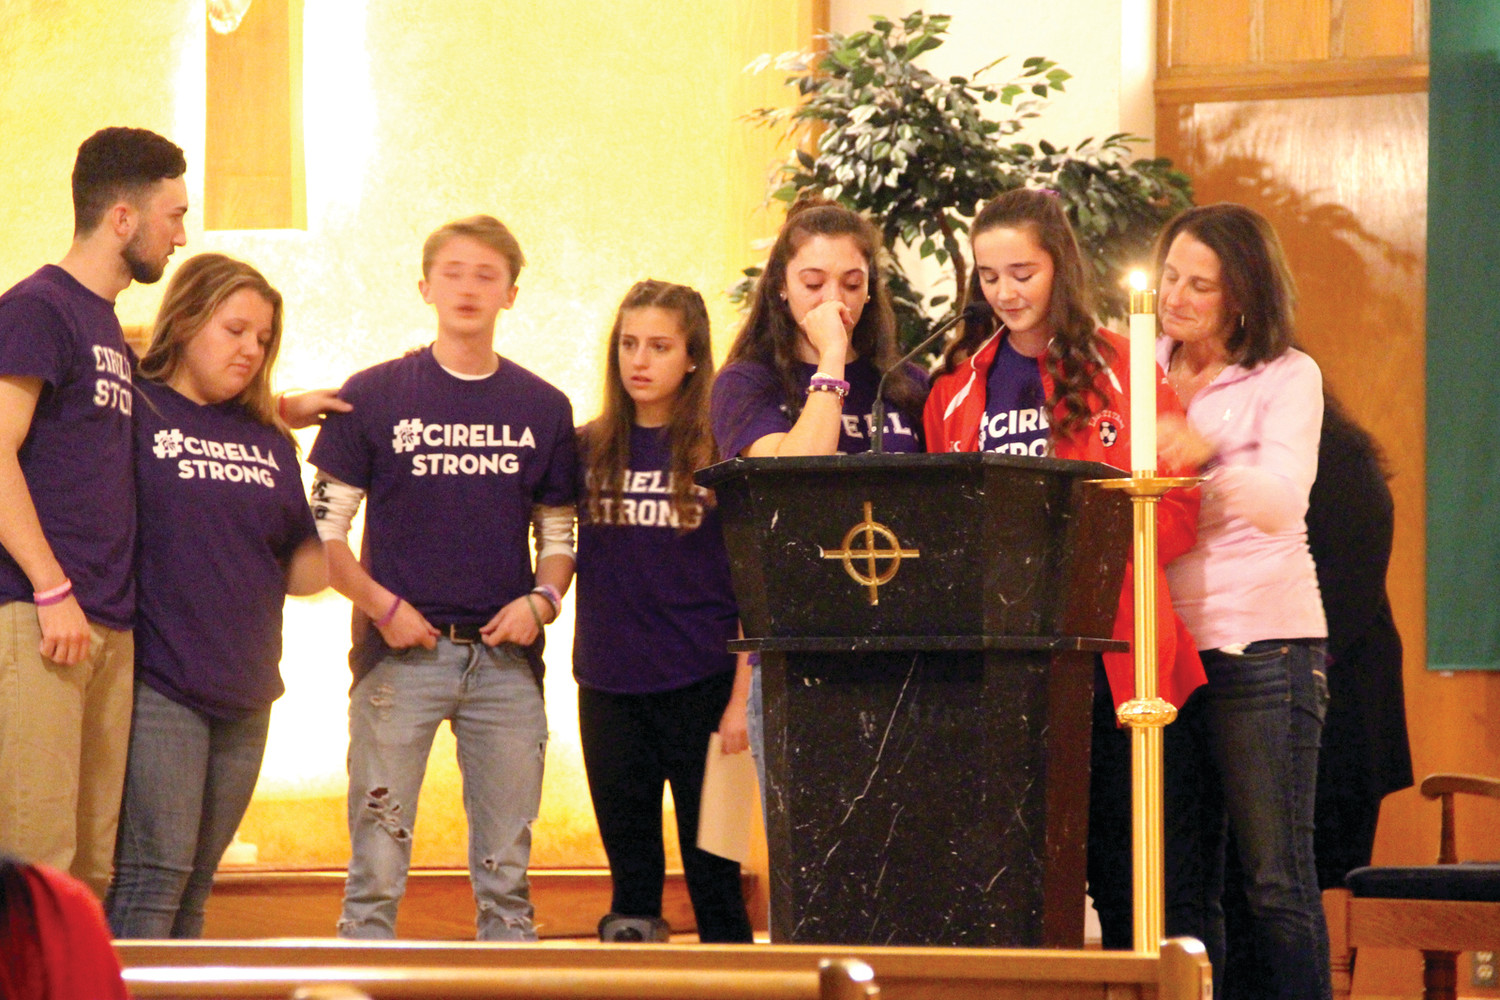 REMEMBERING GIANNA: With Giana's mother, Tara Cirella (at right) joining them, Gianna's friends Andrew Ekroth, Quinn Freeman, Jack Howe, Lizzie Gilbert, Shannon McCamish and Elise Saccoccia talked of their friend and how much she will be missed.